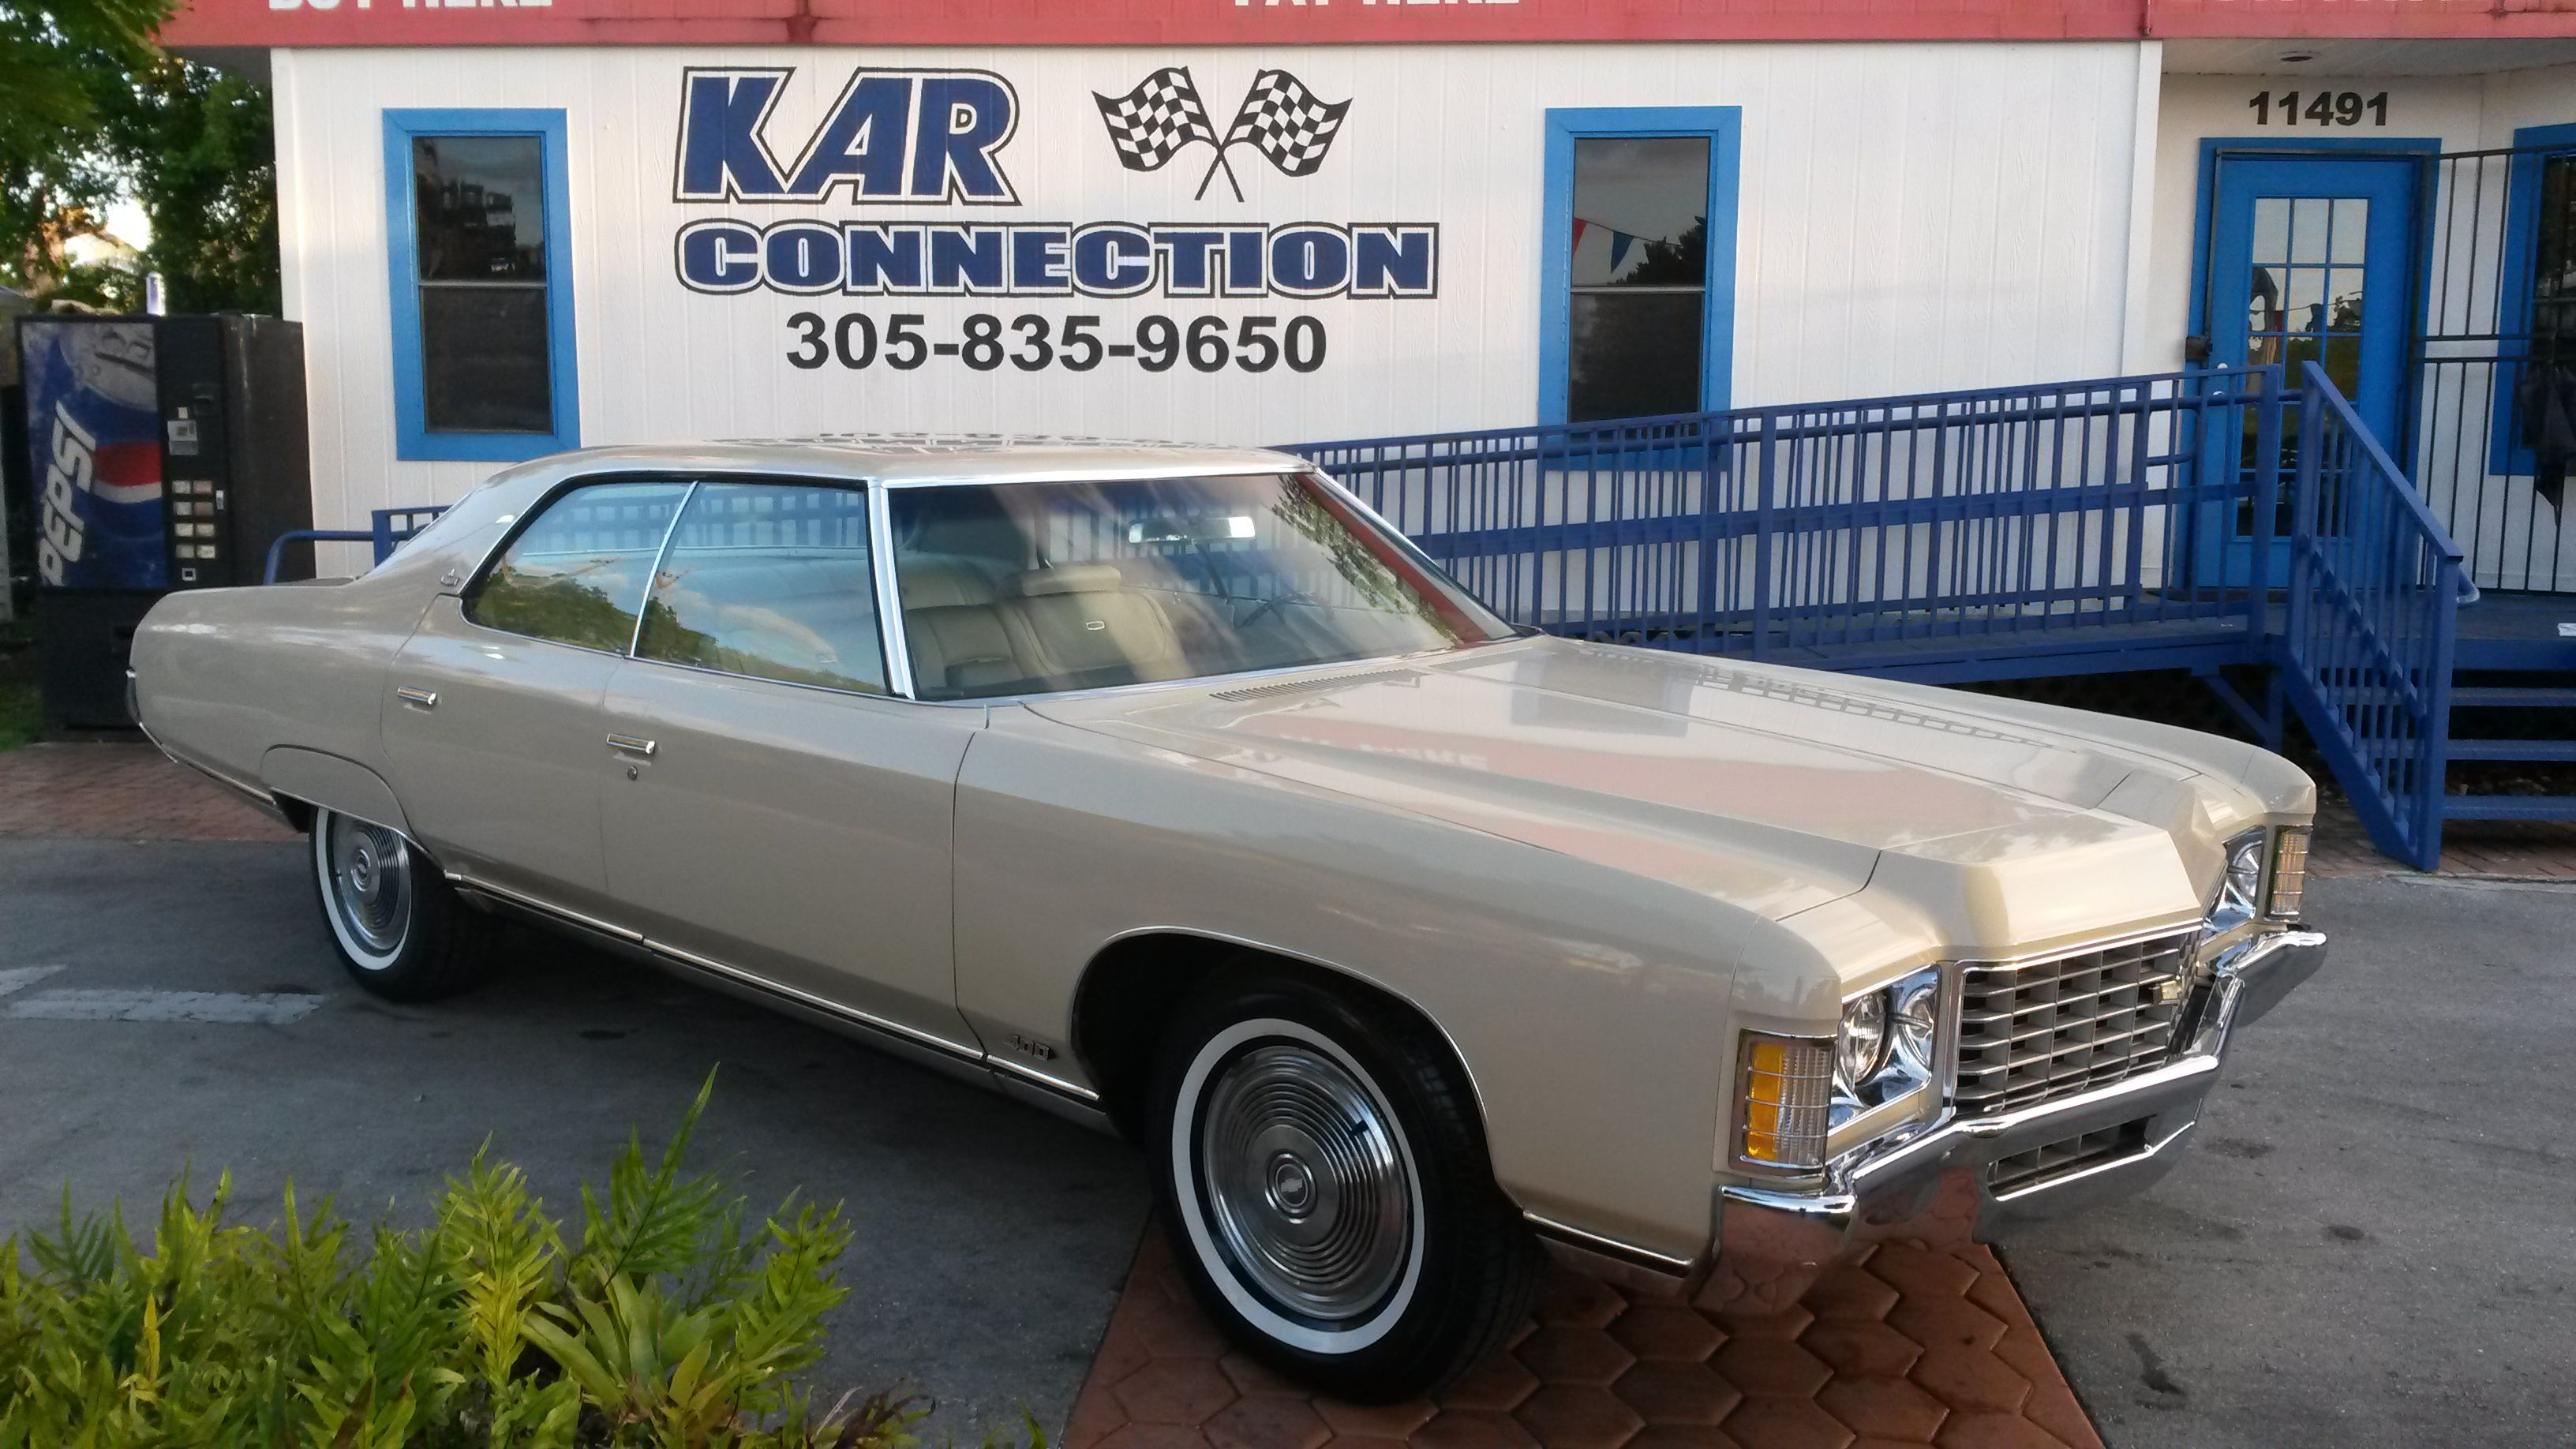 1971 Chevrolet Caprice, One Owner Amazing car. | From Old To New ...